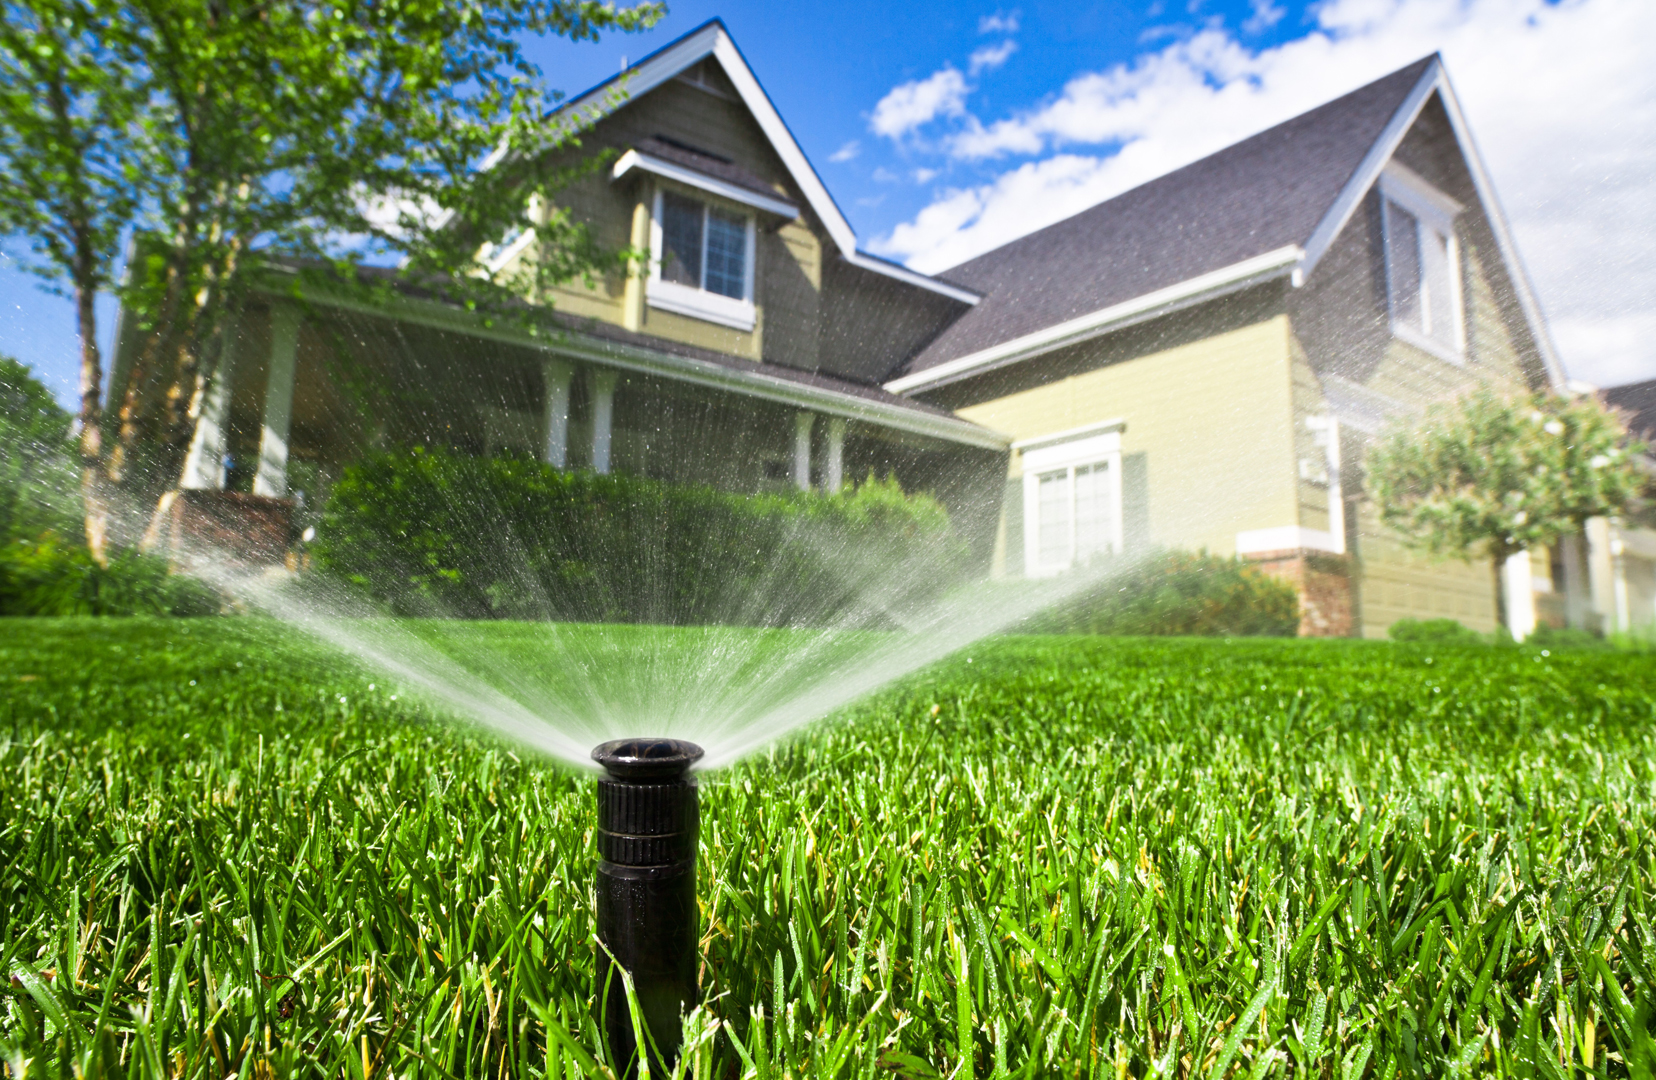 Sprinkler system installation wichita irrigation system install - How to design an irrigation system at home ...